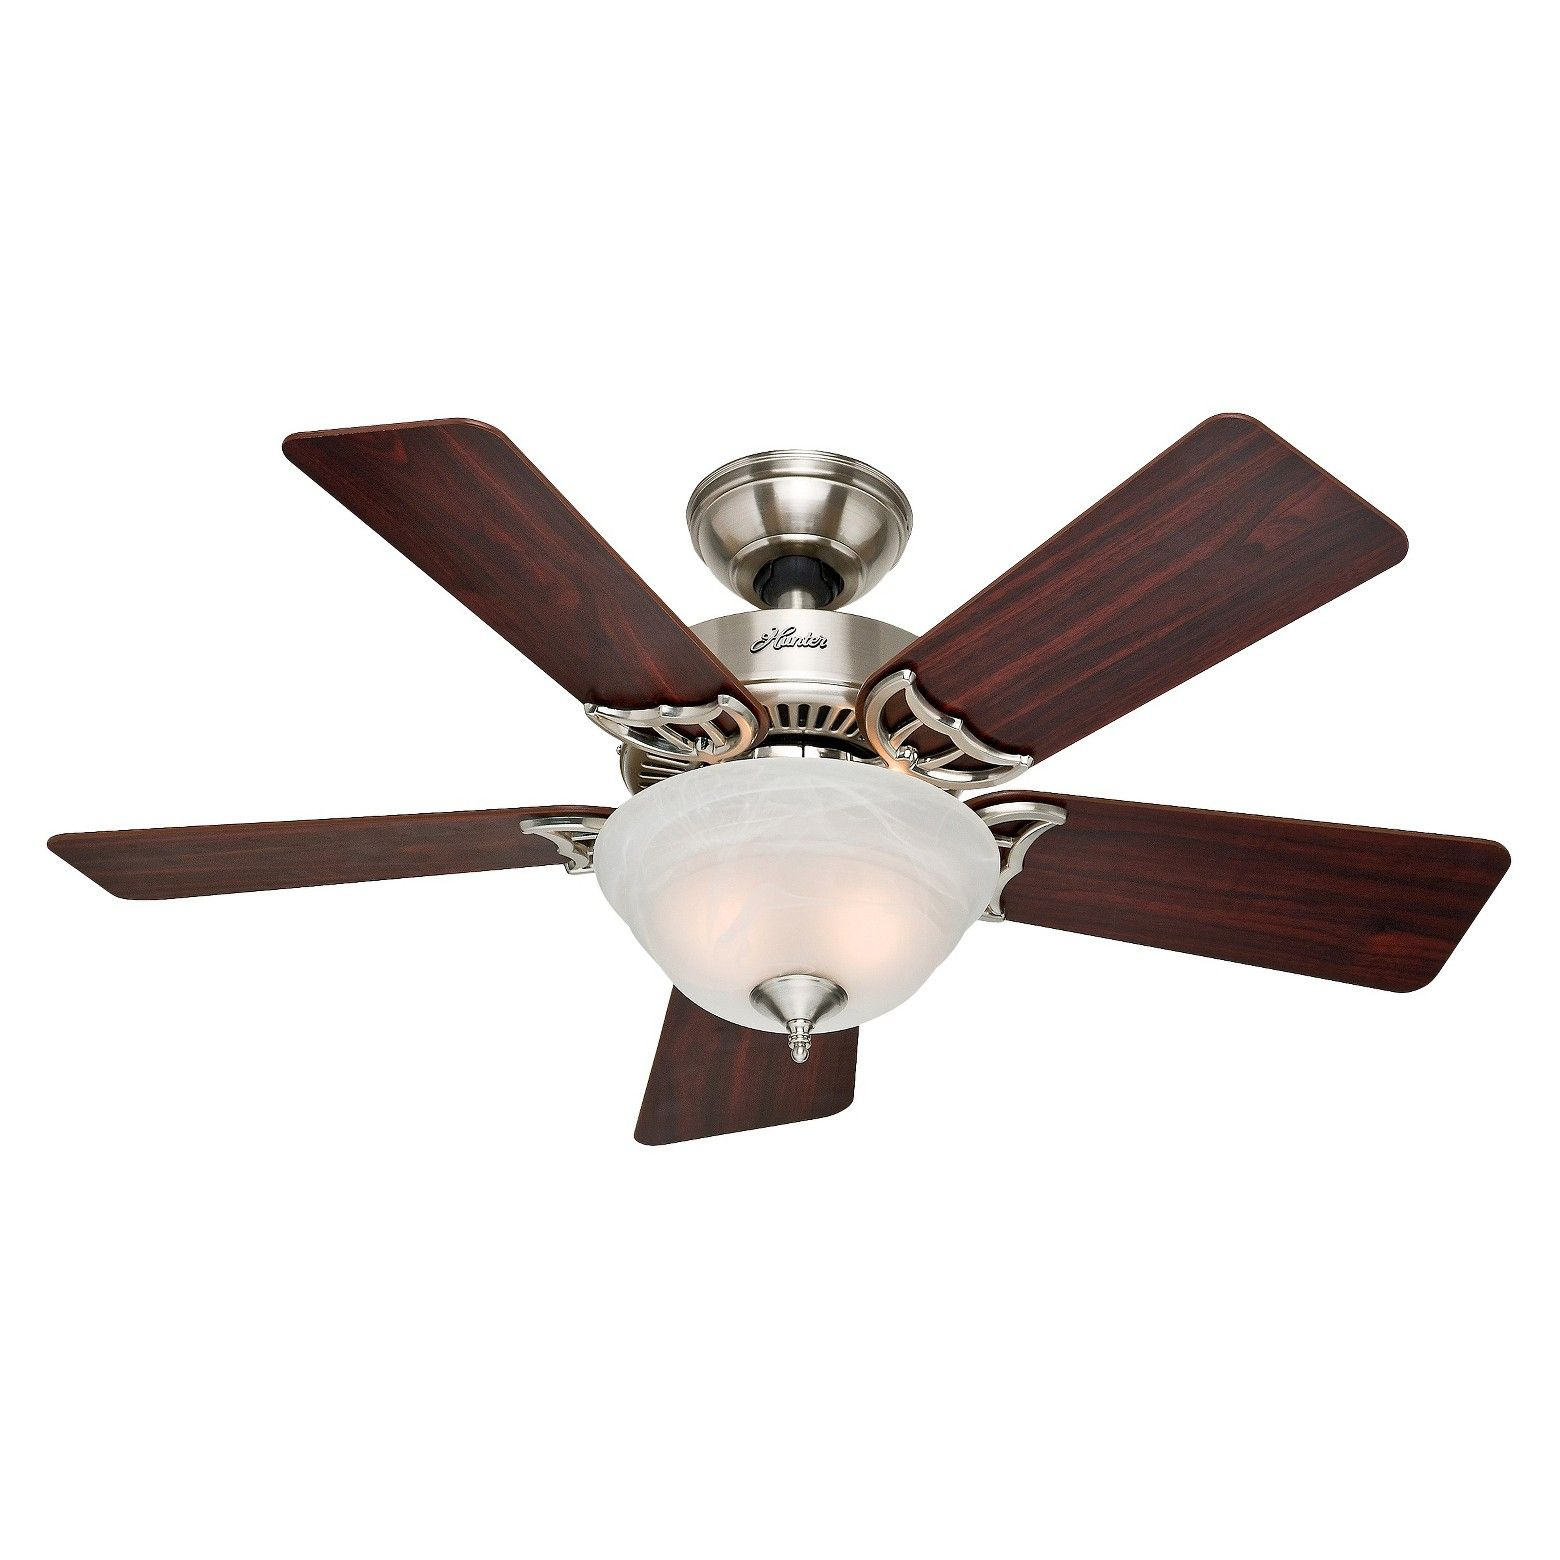 "A traditional design and Brushed Nickel finish make this 42"" fan an"